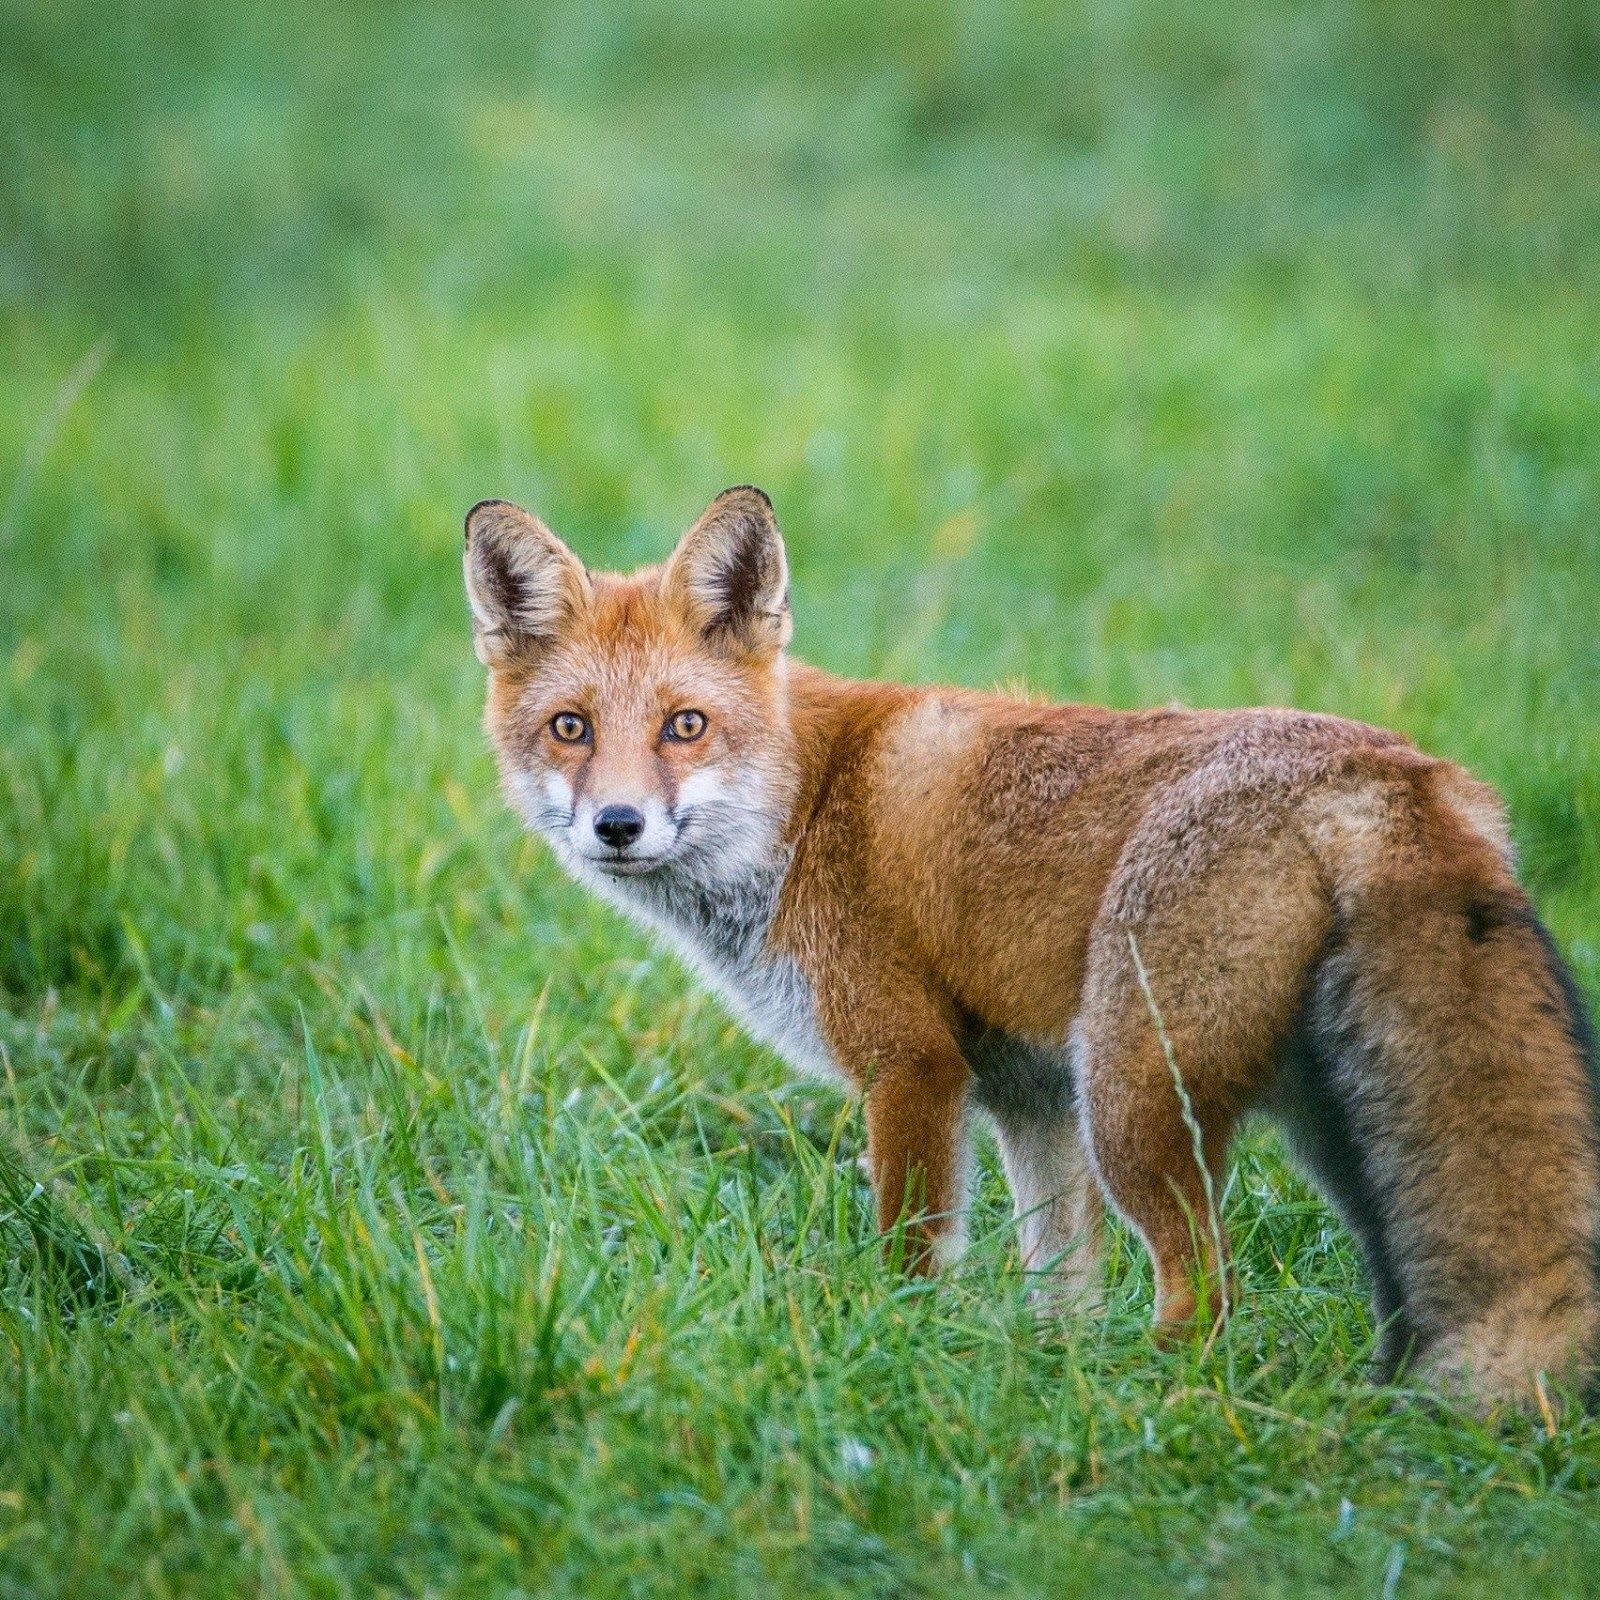 Why Roald Dahl Thought Fox Hunting Was Foolish Pointless And Cruel